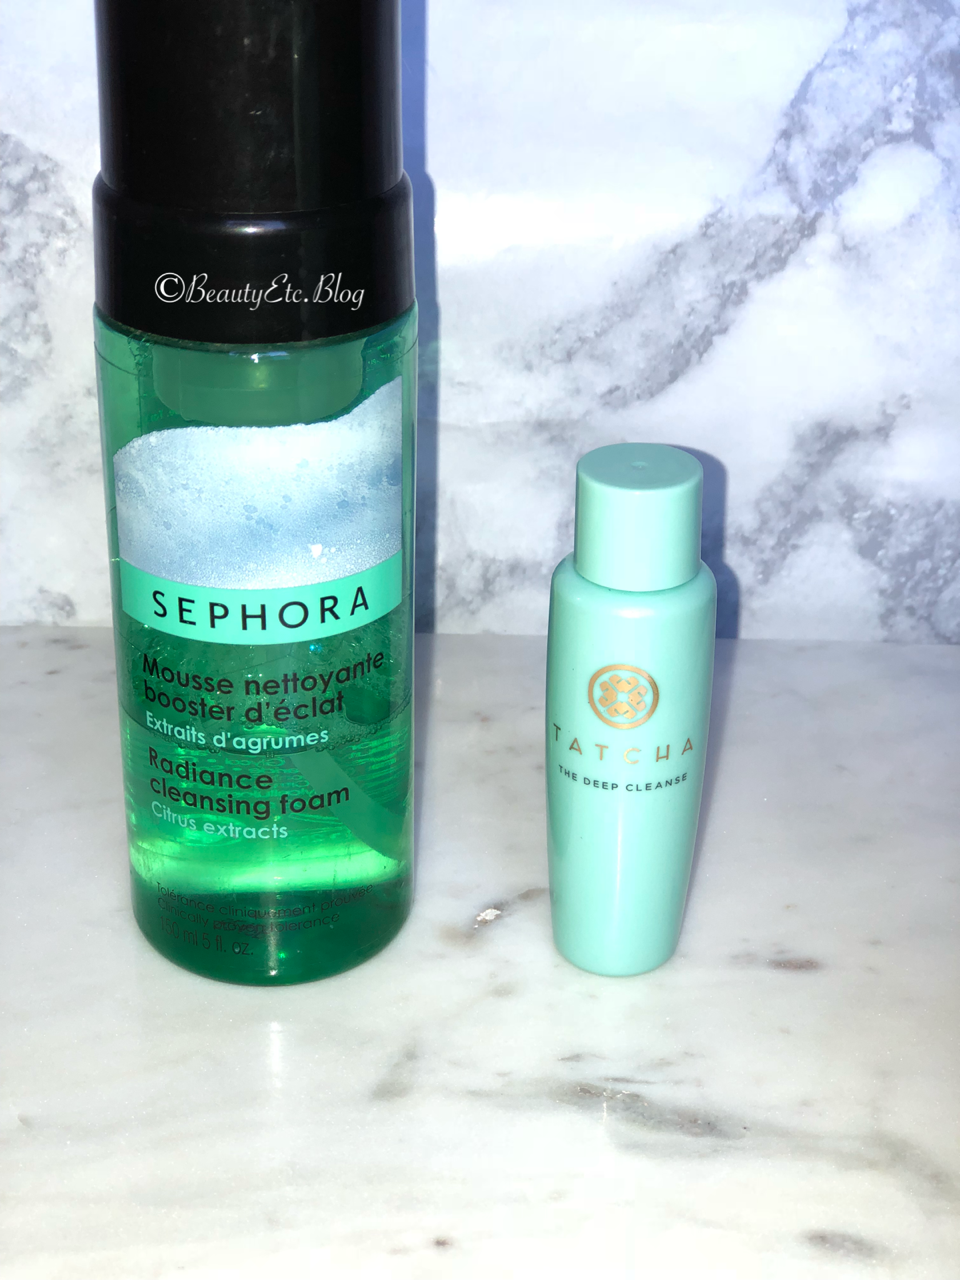 Sephora Collection Radiance Cleansing Foam  $8.00 |  Tatacha Deep Cleanse  (full size) $38.00